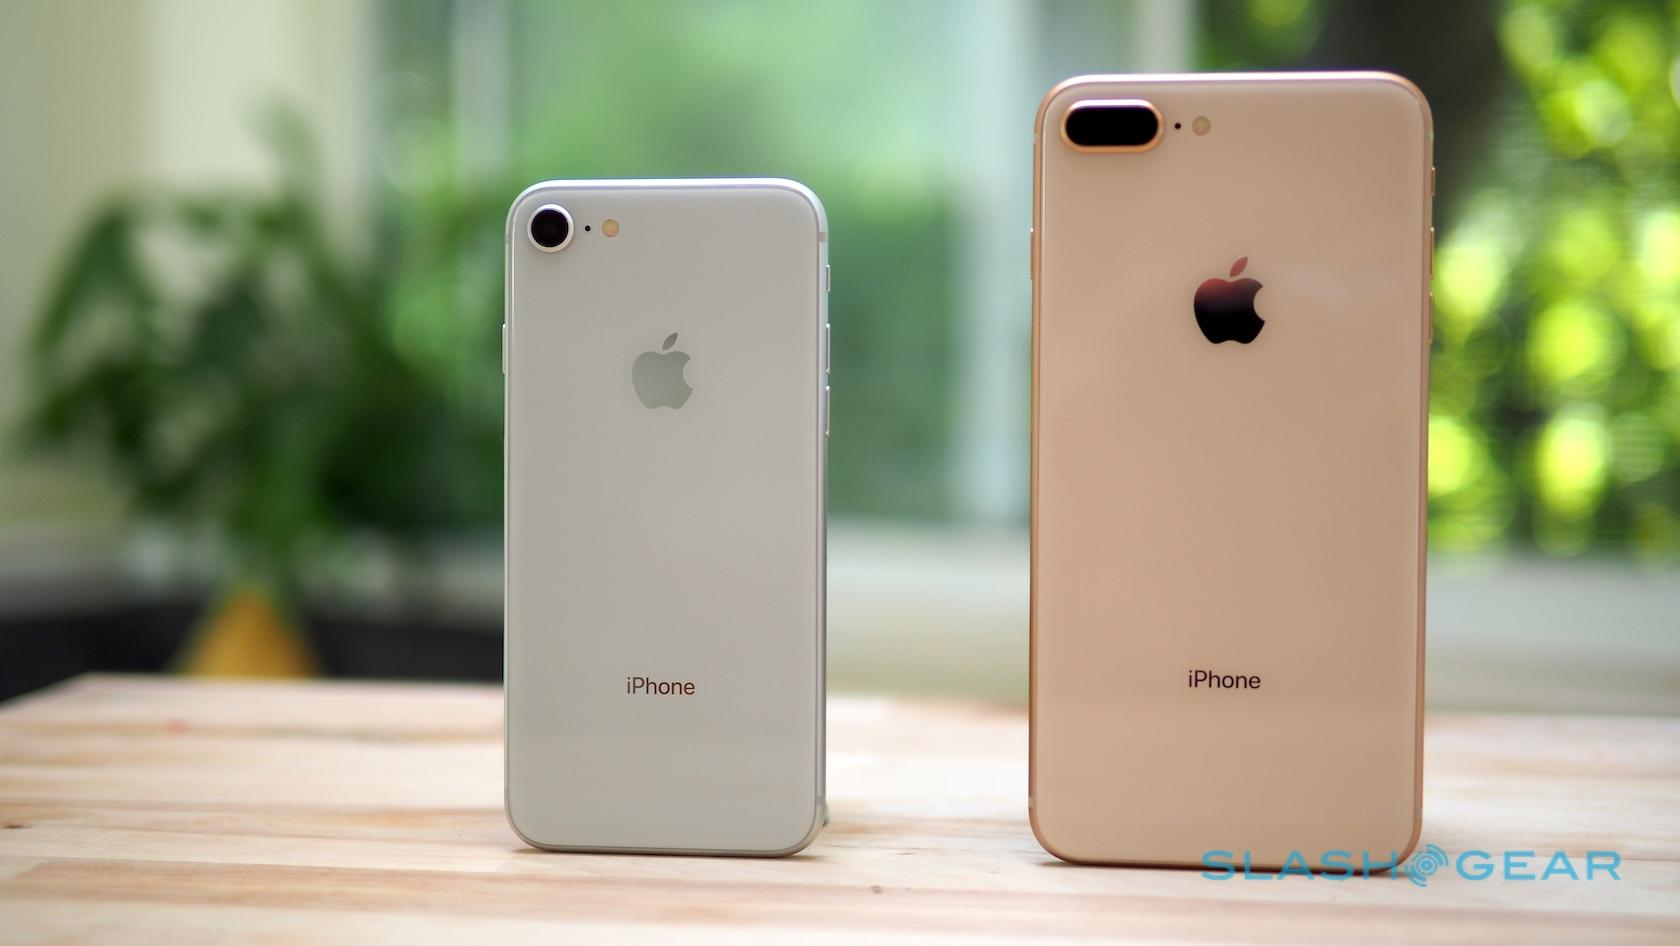 Next Apple event tipped for March with cheap iPhone - SlashGear